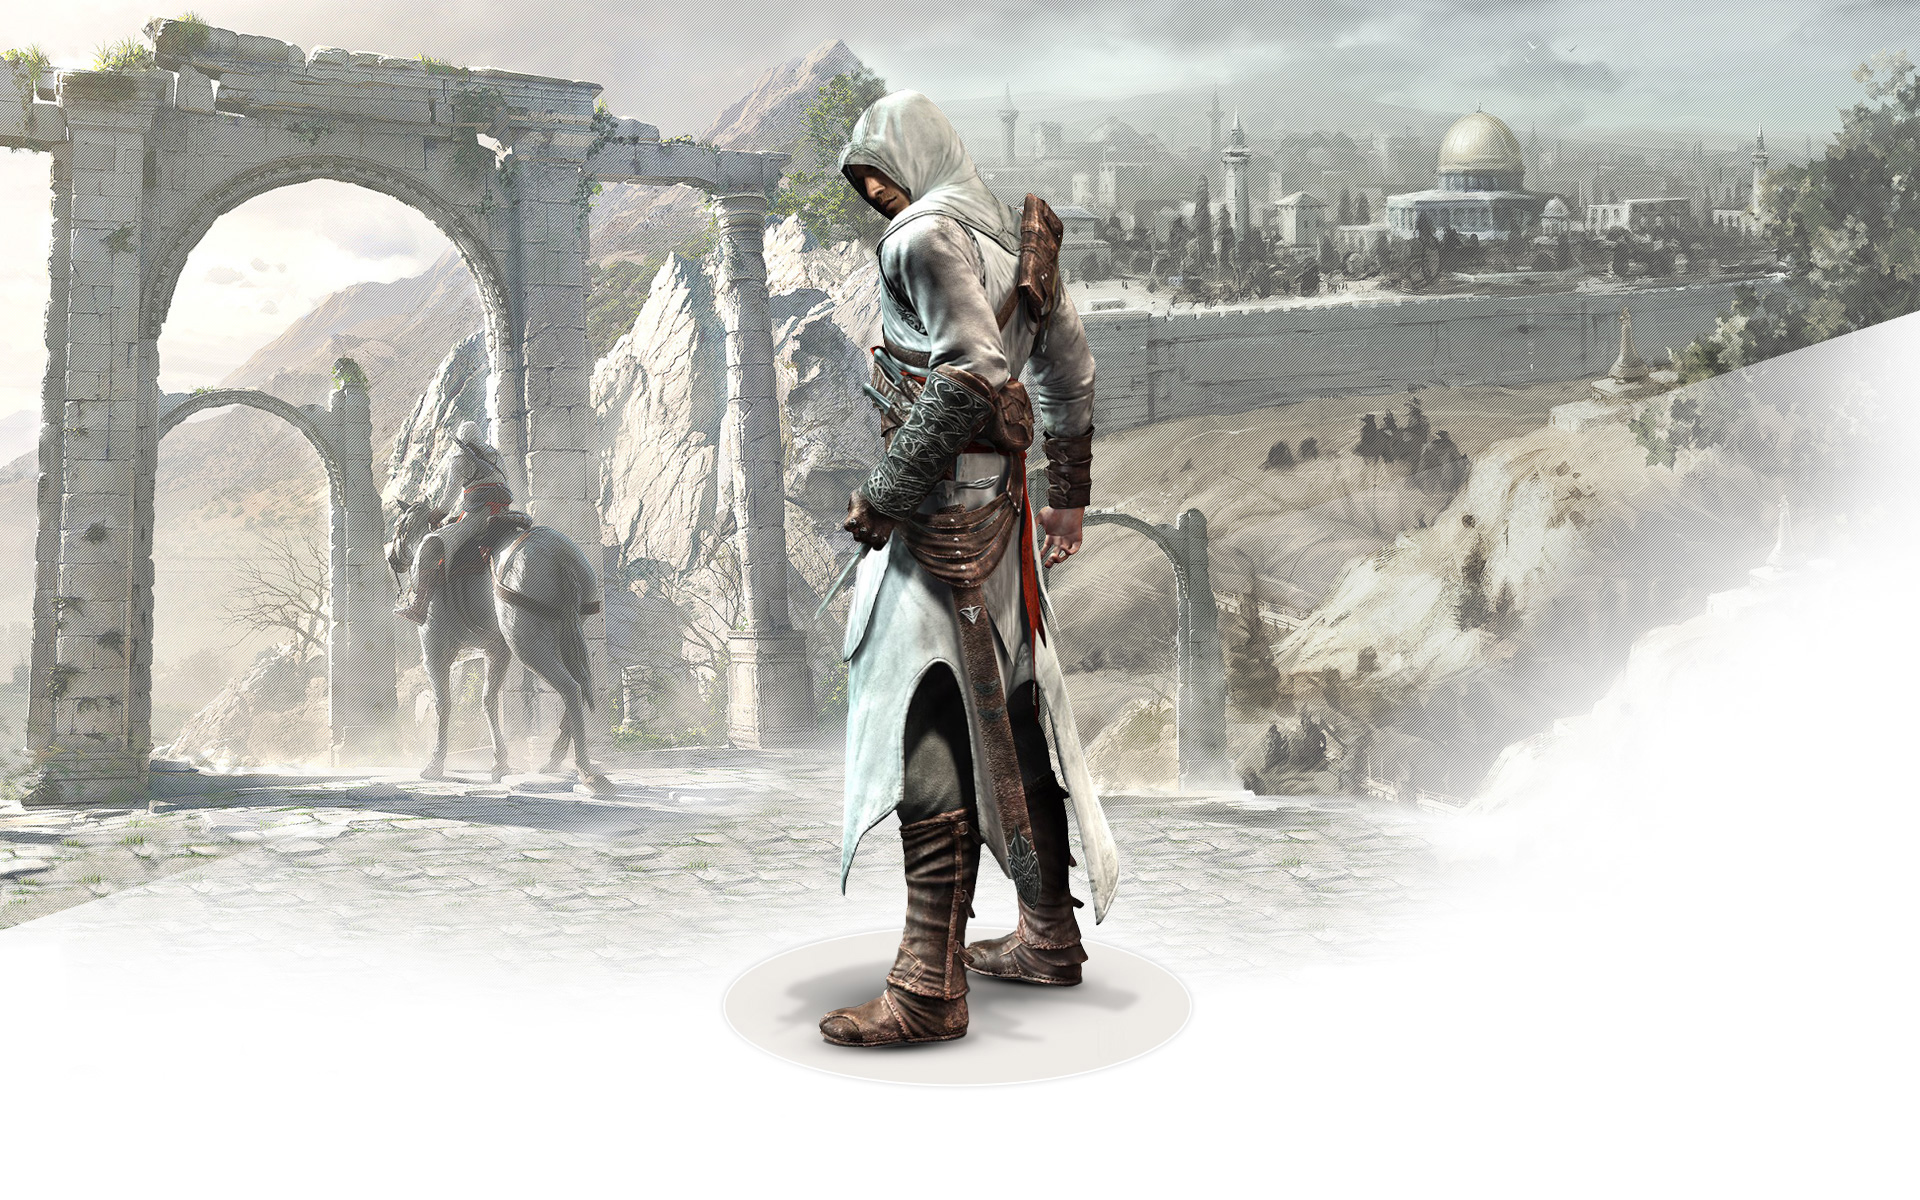 Altair 4k Wallpapers For Your Desktop Or Mobile Screen Free And